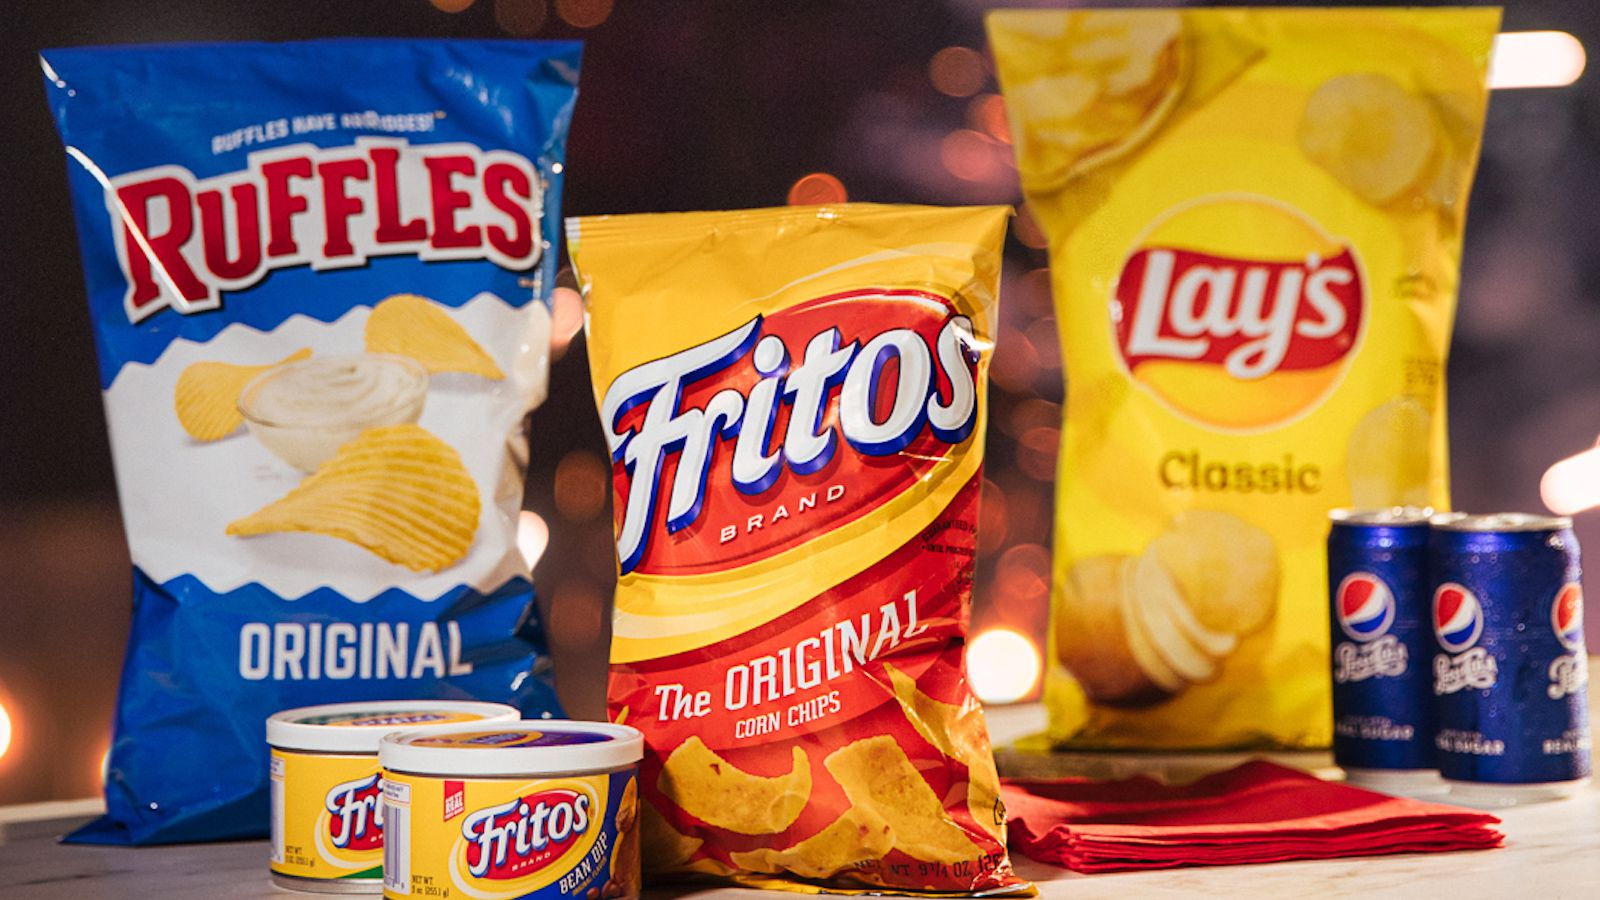 Frito Lay focused on getting its basics on the shelf during the stay-at-home peak periods. Shoppers were panic buying and stocking up on salty snacks to make up for those mid-afternoon trips to the vending machine down the hall.